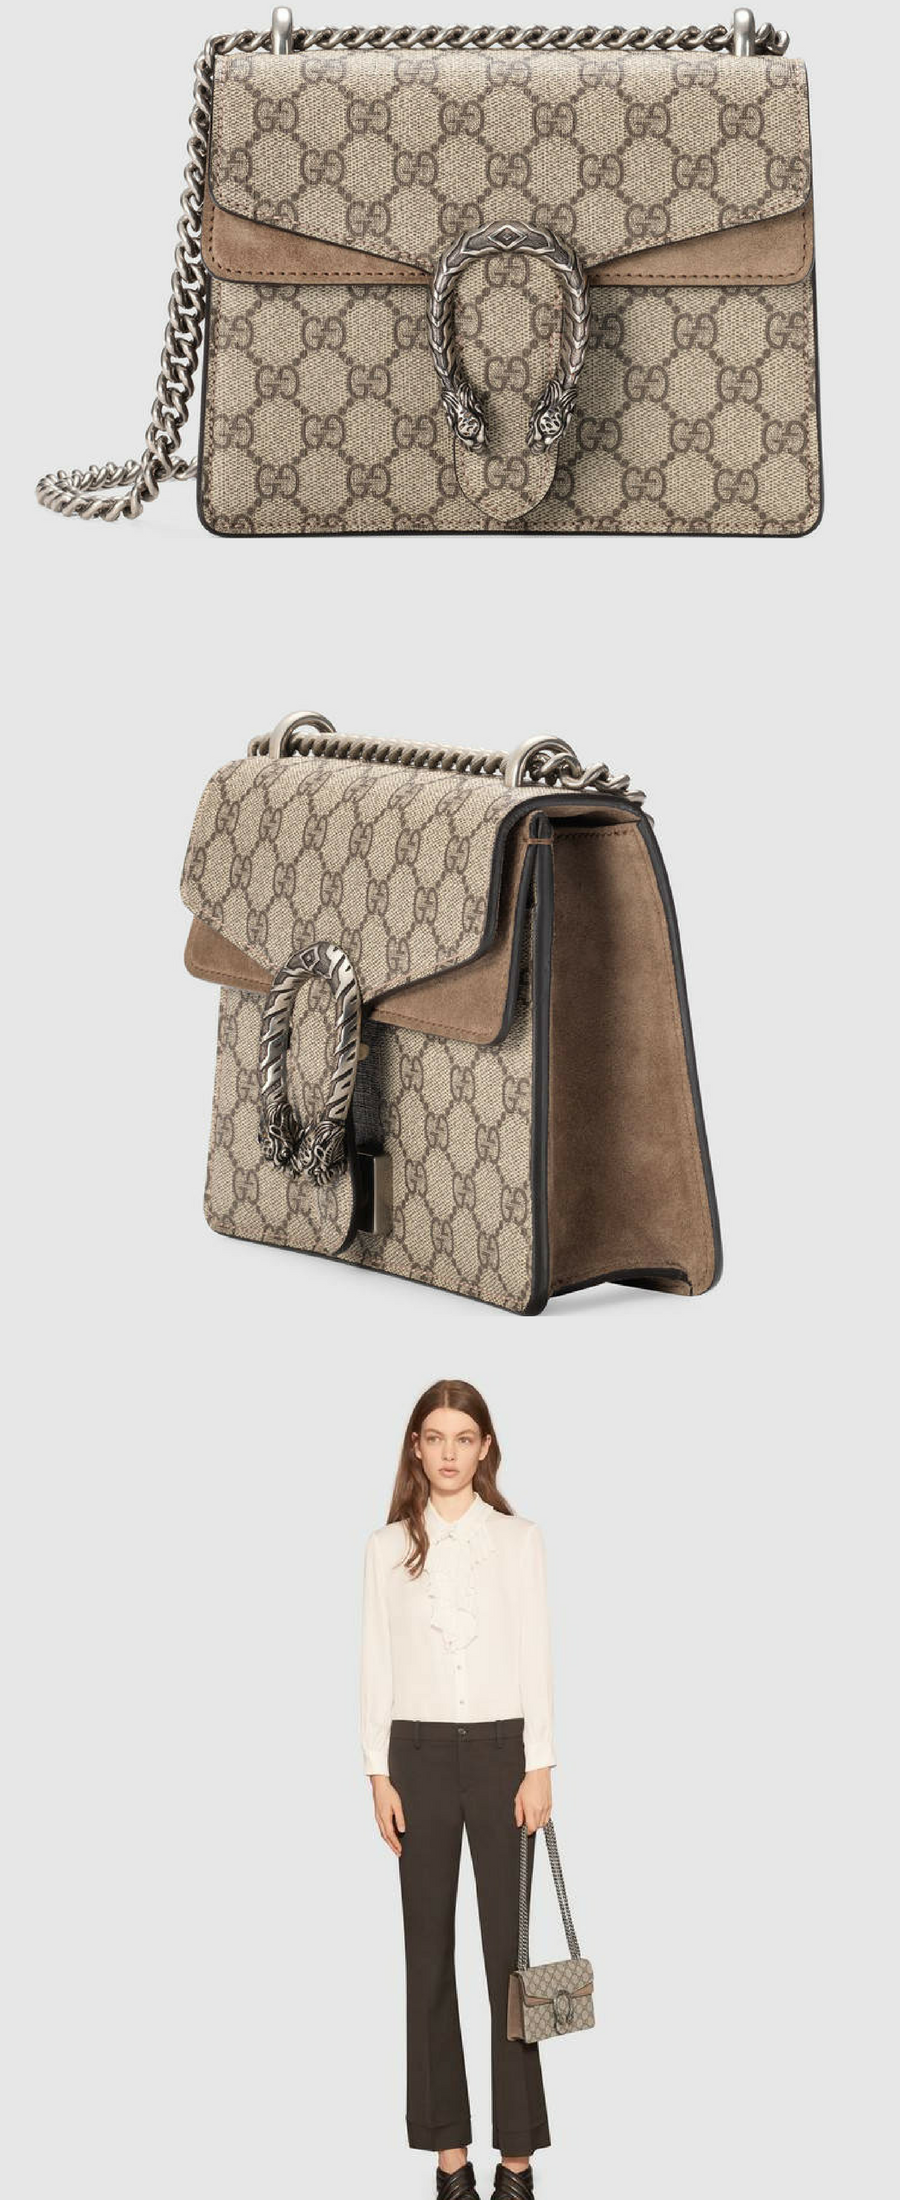 ae48b10c8bb297 Gucci Dionysus GG Supreme mini bag | Women's fashion | Bags, Gucci ...